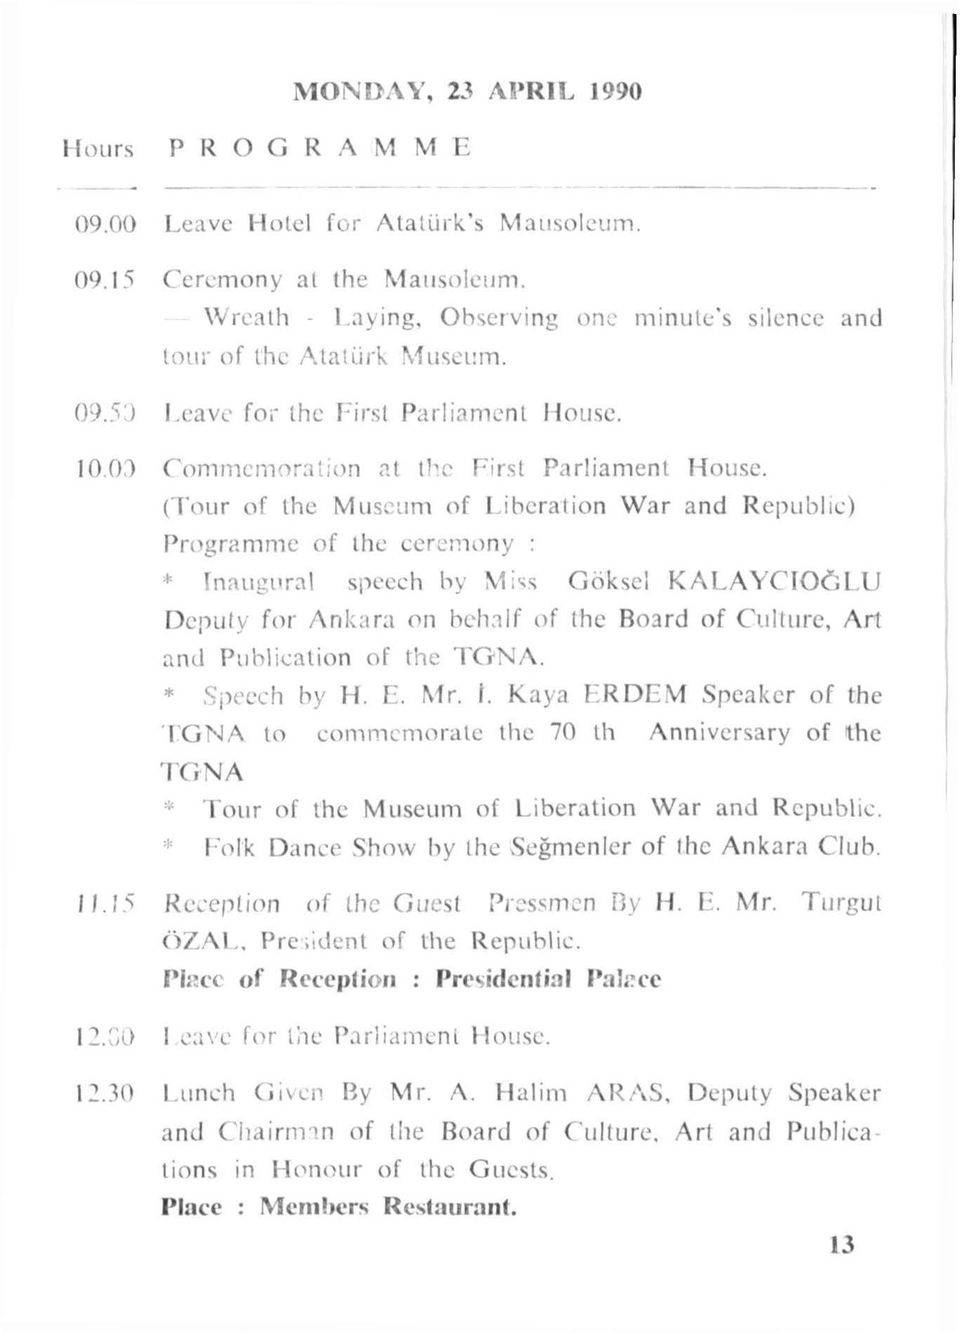 (Tour of the Mus um of Liberalian War a nd R epublıc) Programme of the ceremony : ~ rnaugtıral speech by, i ~~ Göksel KALA YCrüöLU Deputy for Ankara on hch :ıl f of the Board of Culture, Art anti